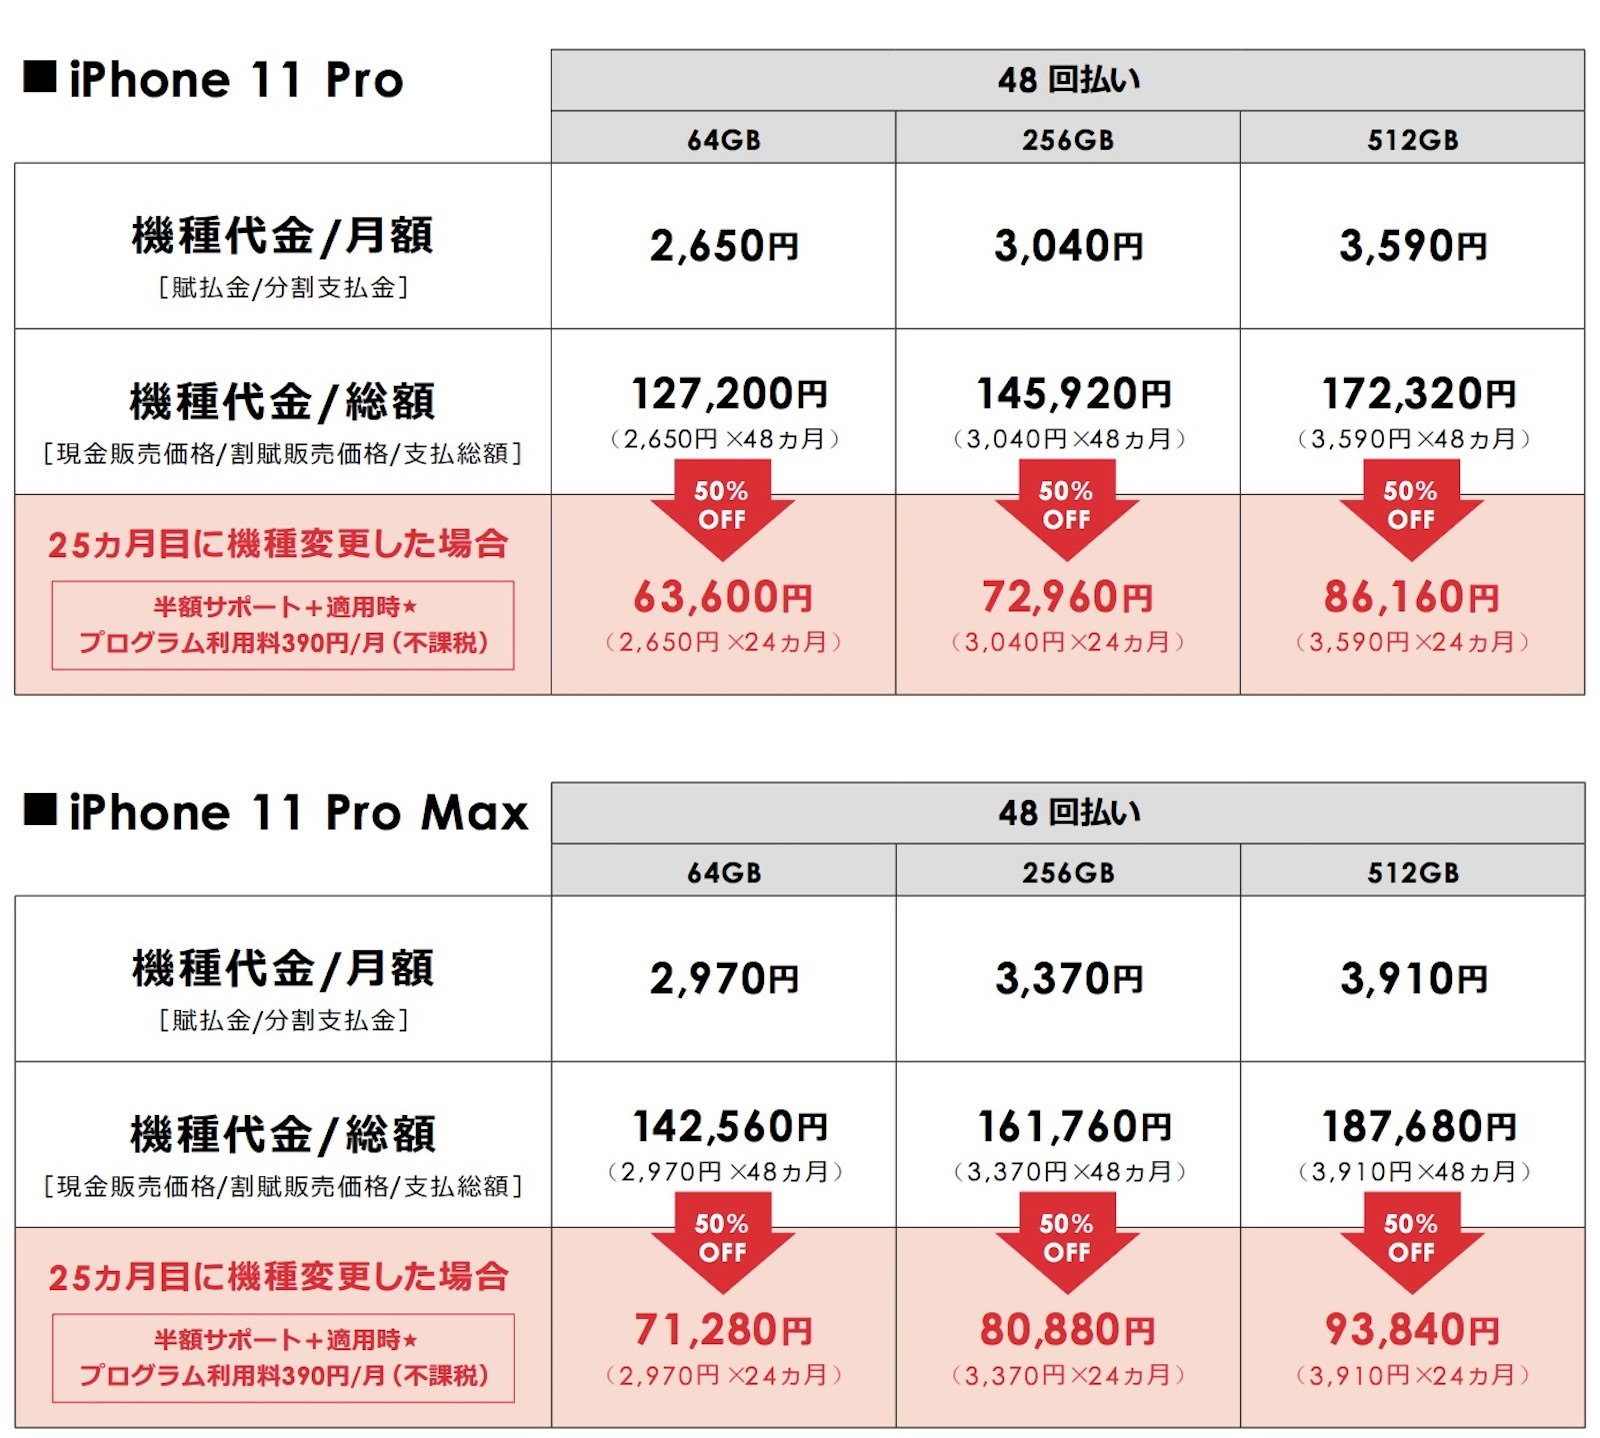 Softbank pricing